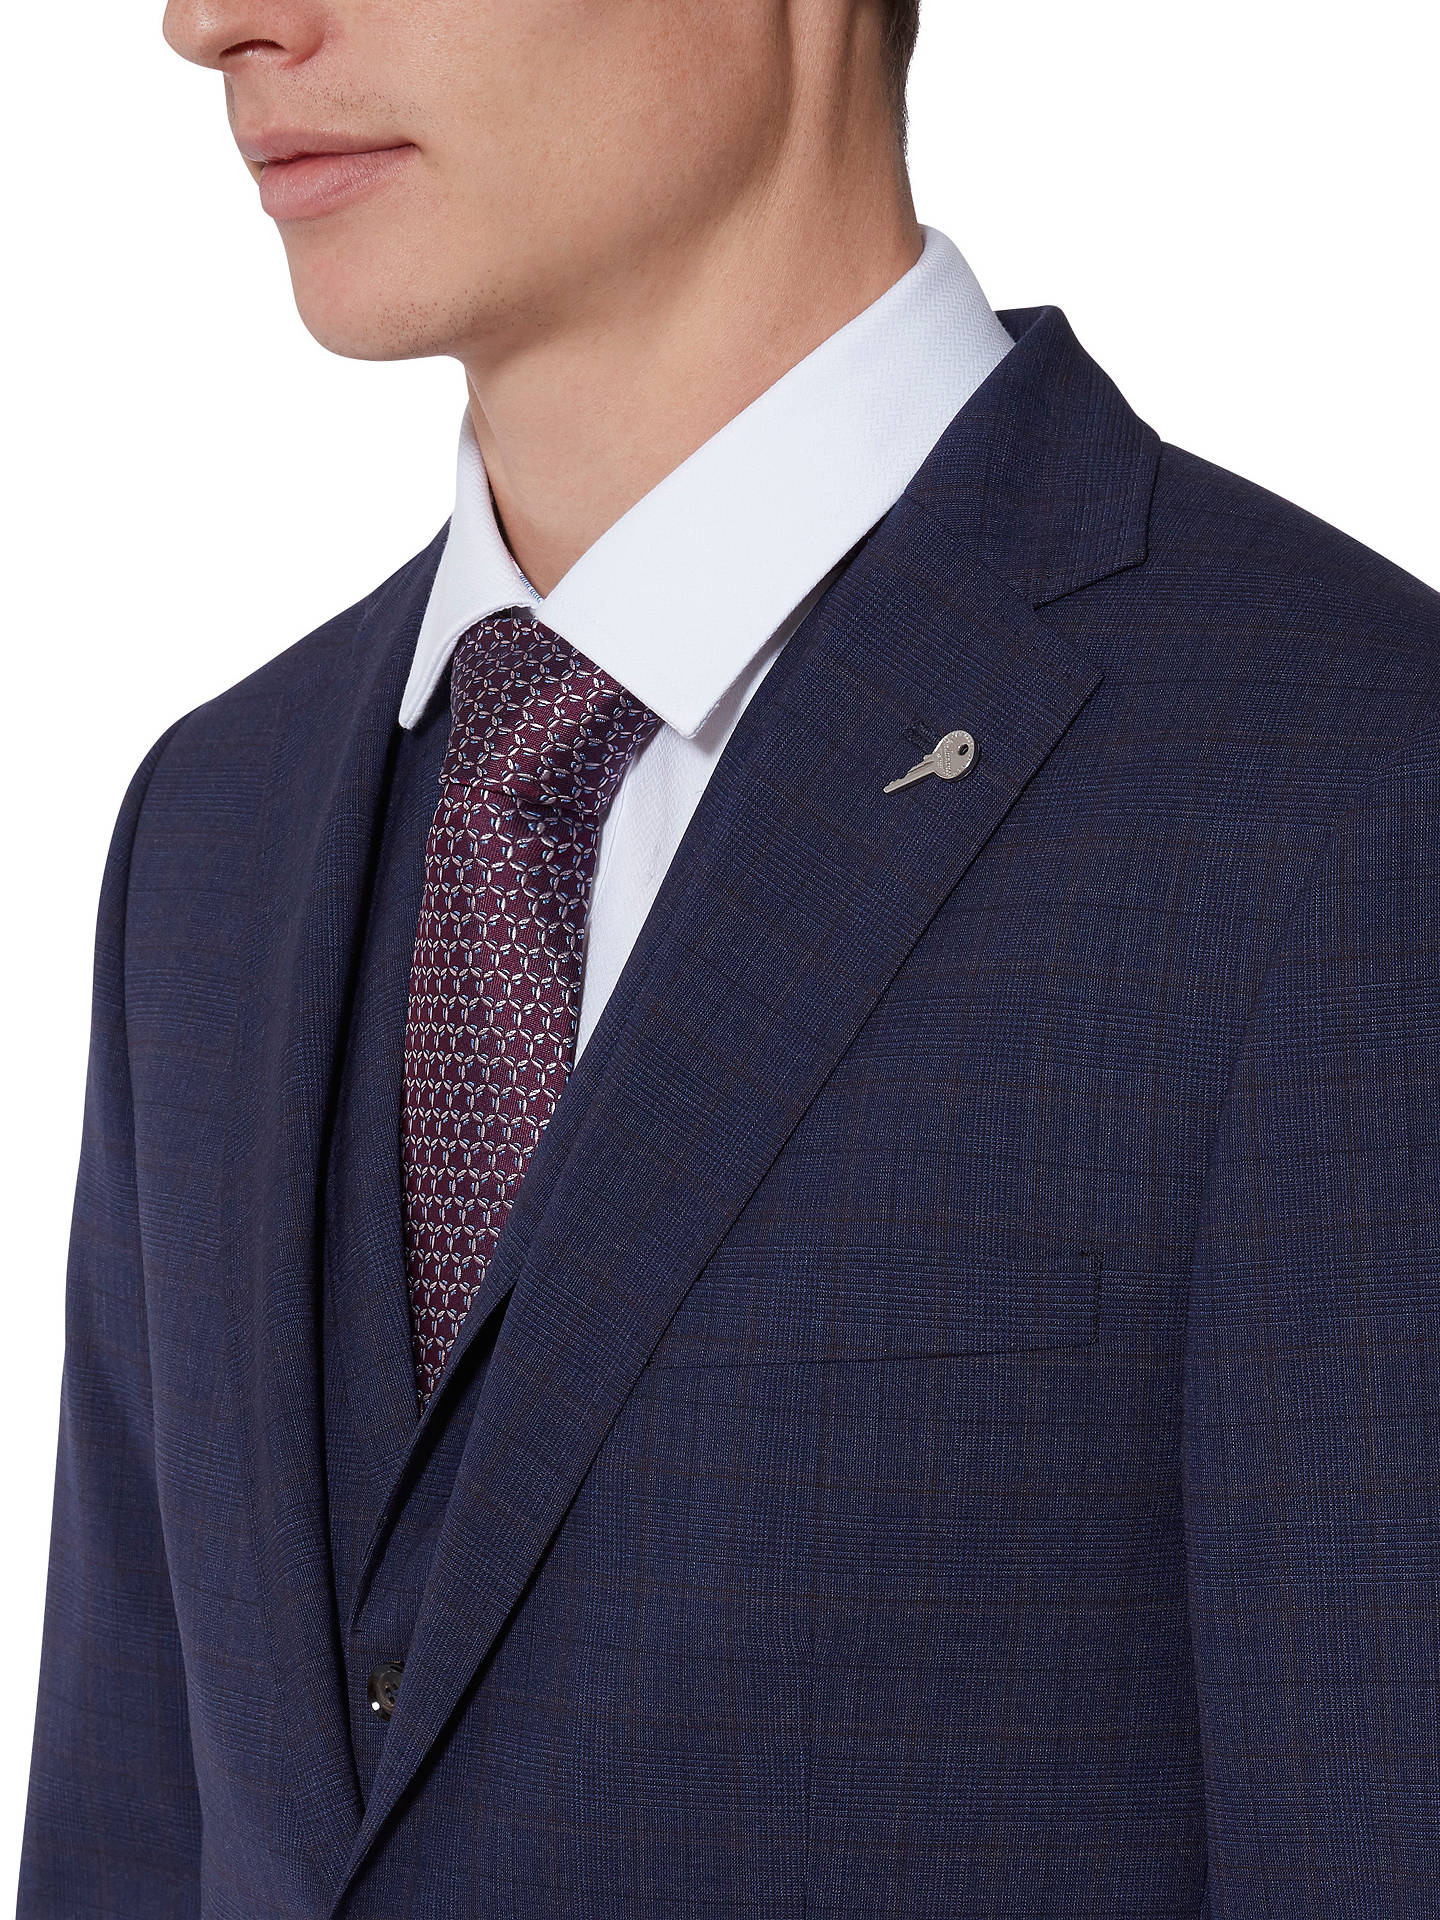 BuyTed Baker Vienaj Check Tailored Suit Jacket, Blue, 38S Online at johnlewis.com